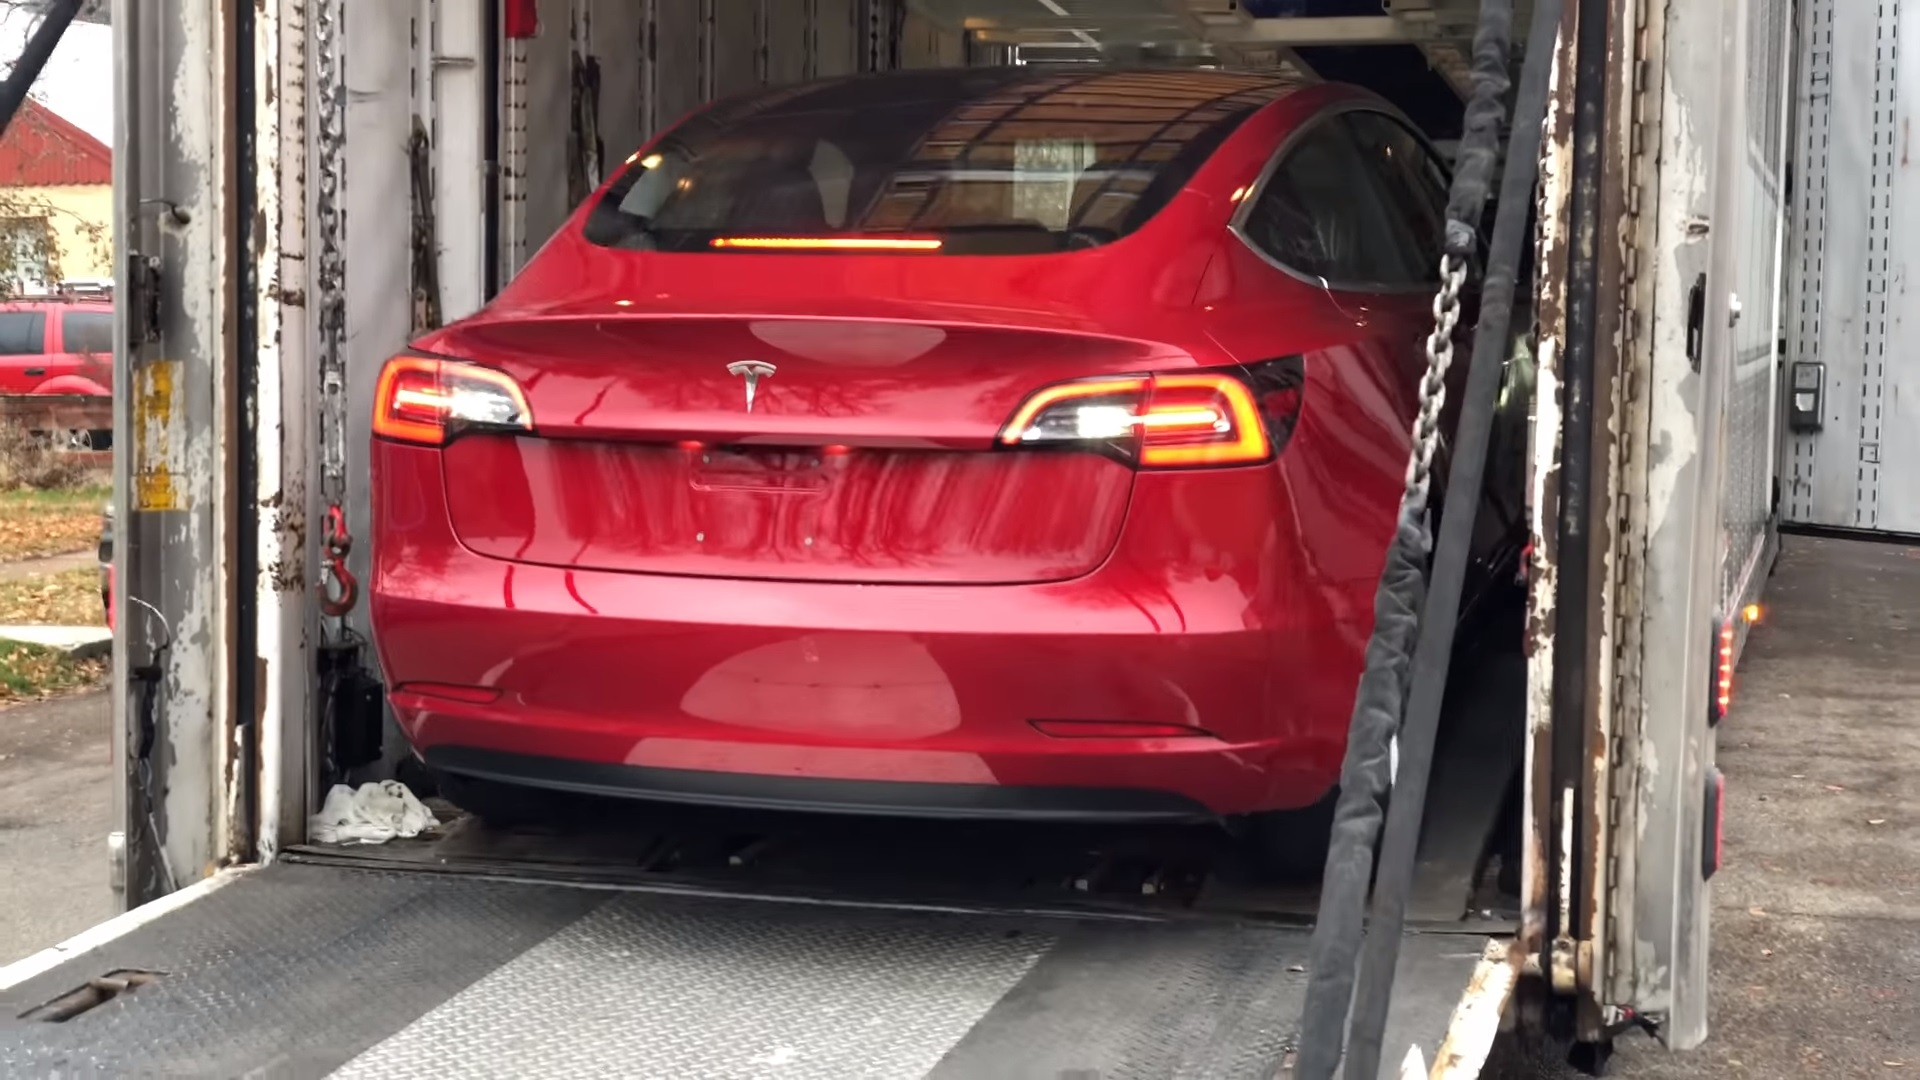 If You Have Ordered Or Will Order A 2019 Tesla Model 3, Here